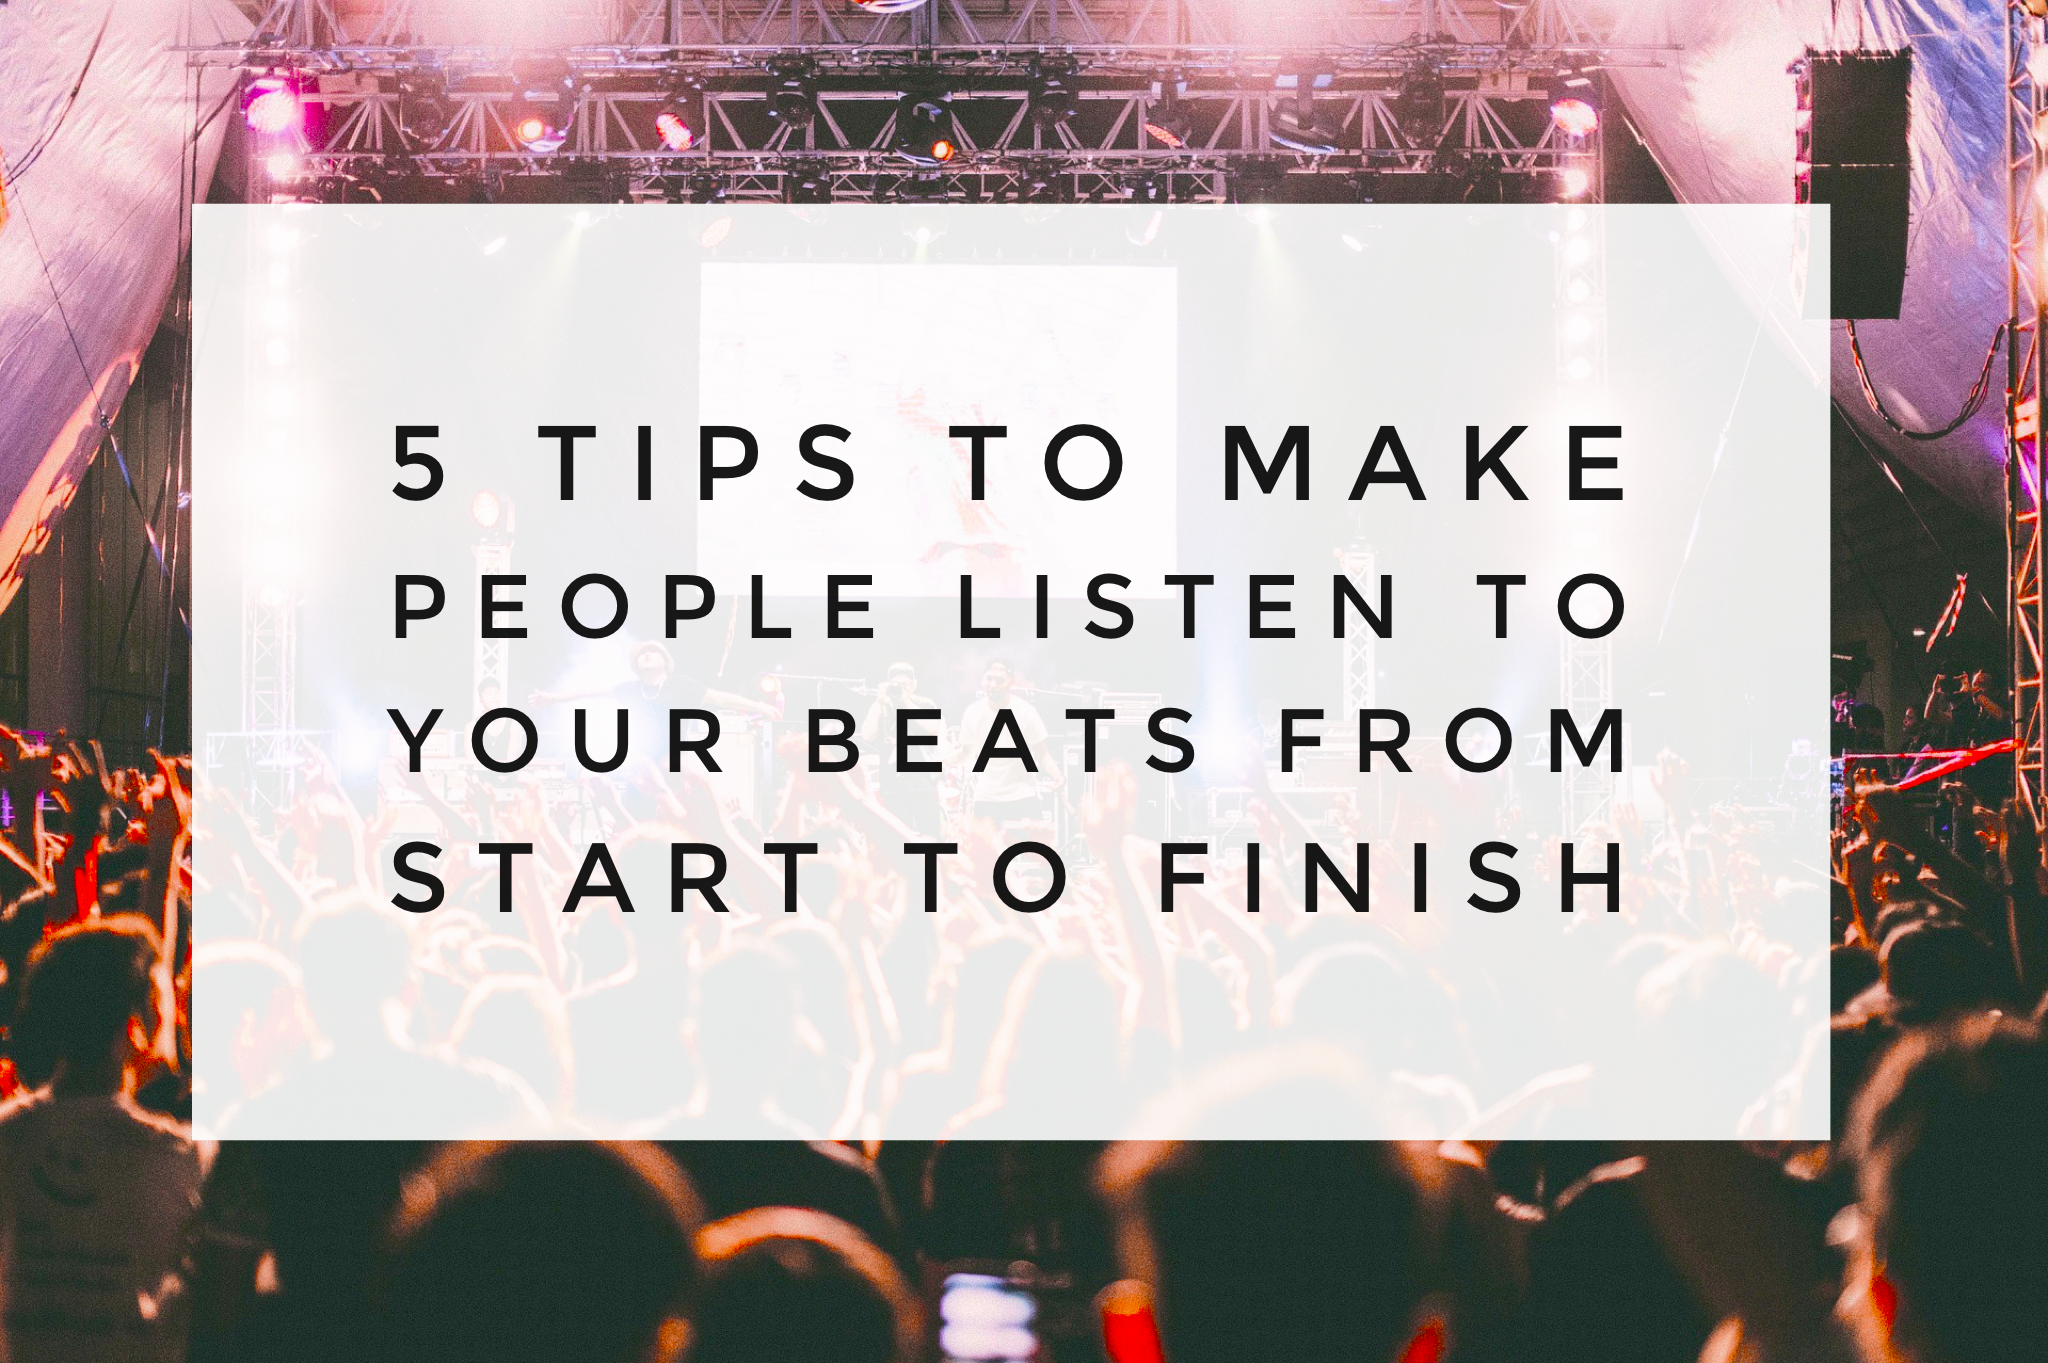 5 Tips To Make People Listen To Your Beats From Start To Finish